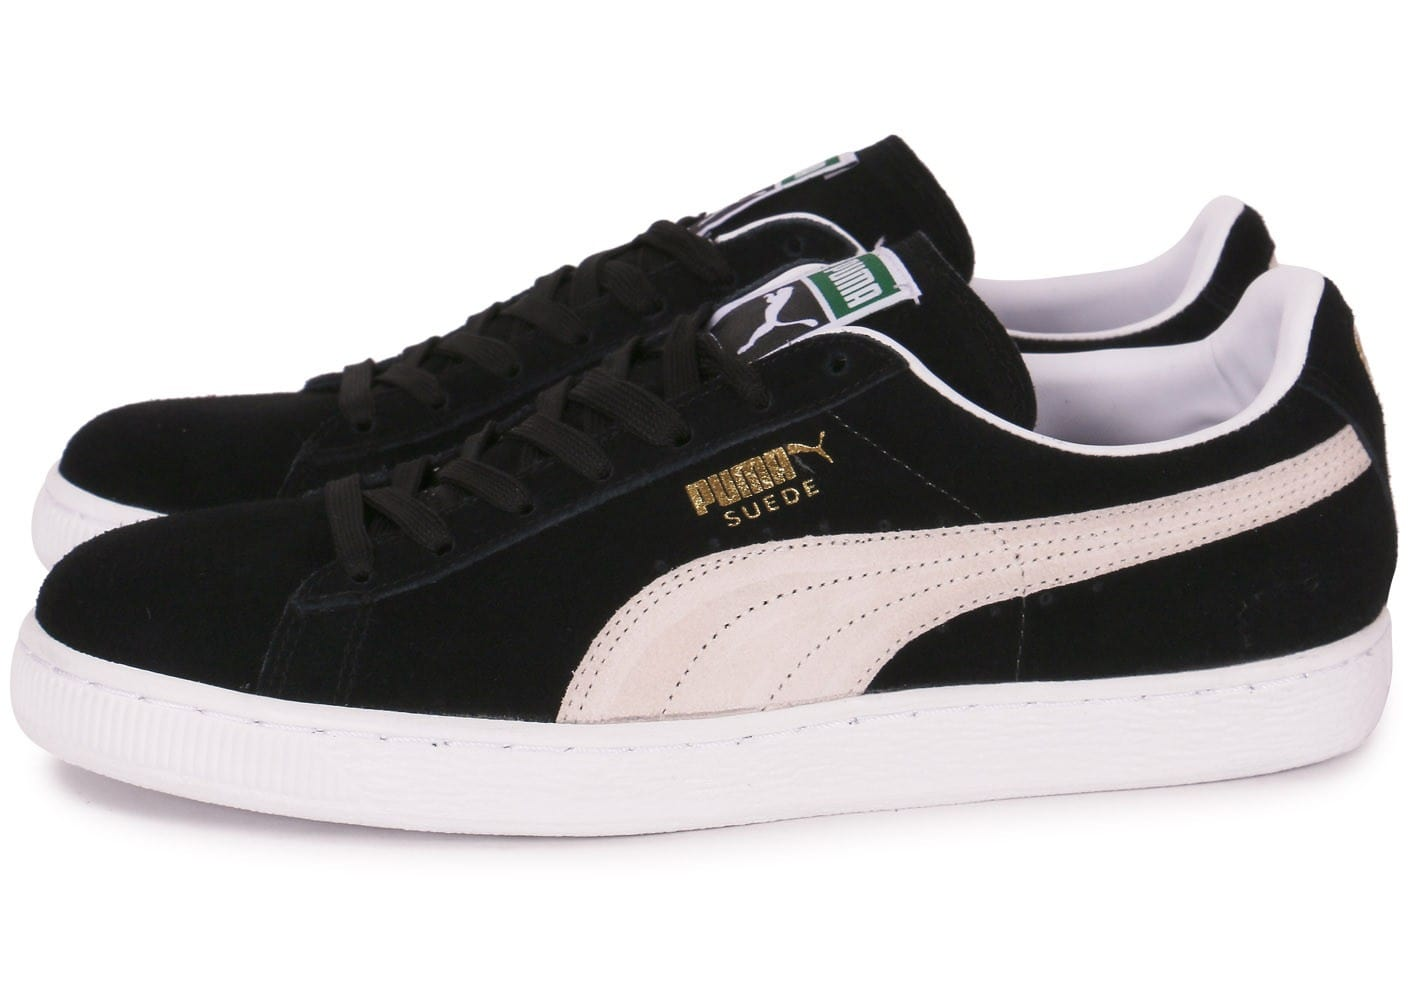 Chaussures Puma Suede Classic bleues Fashion homme 5nPdRo2Ar